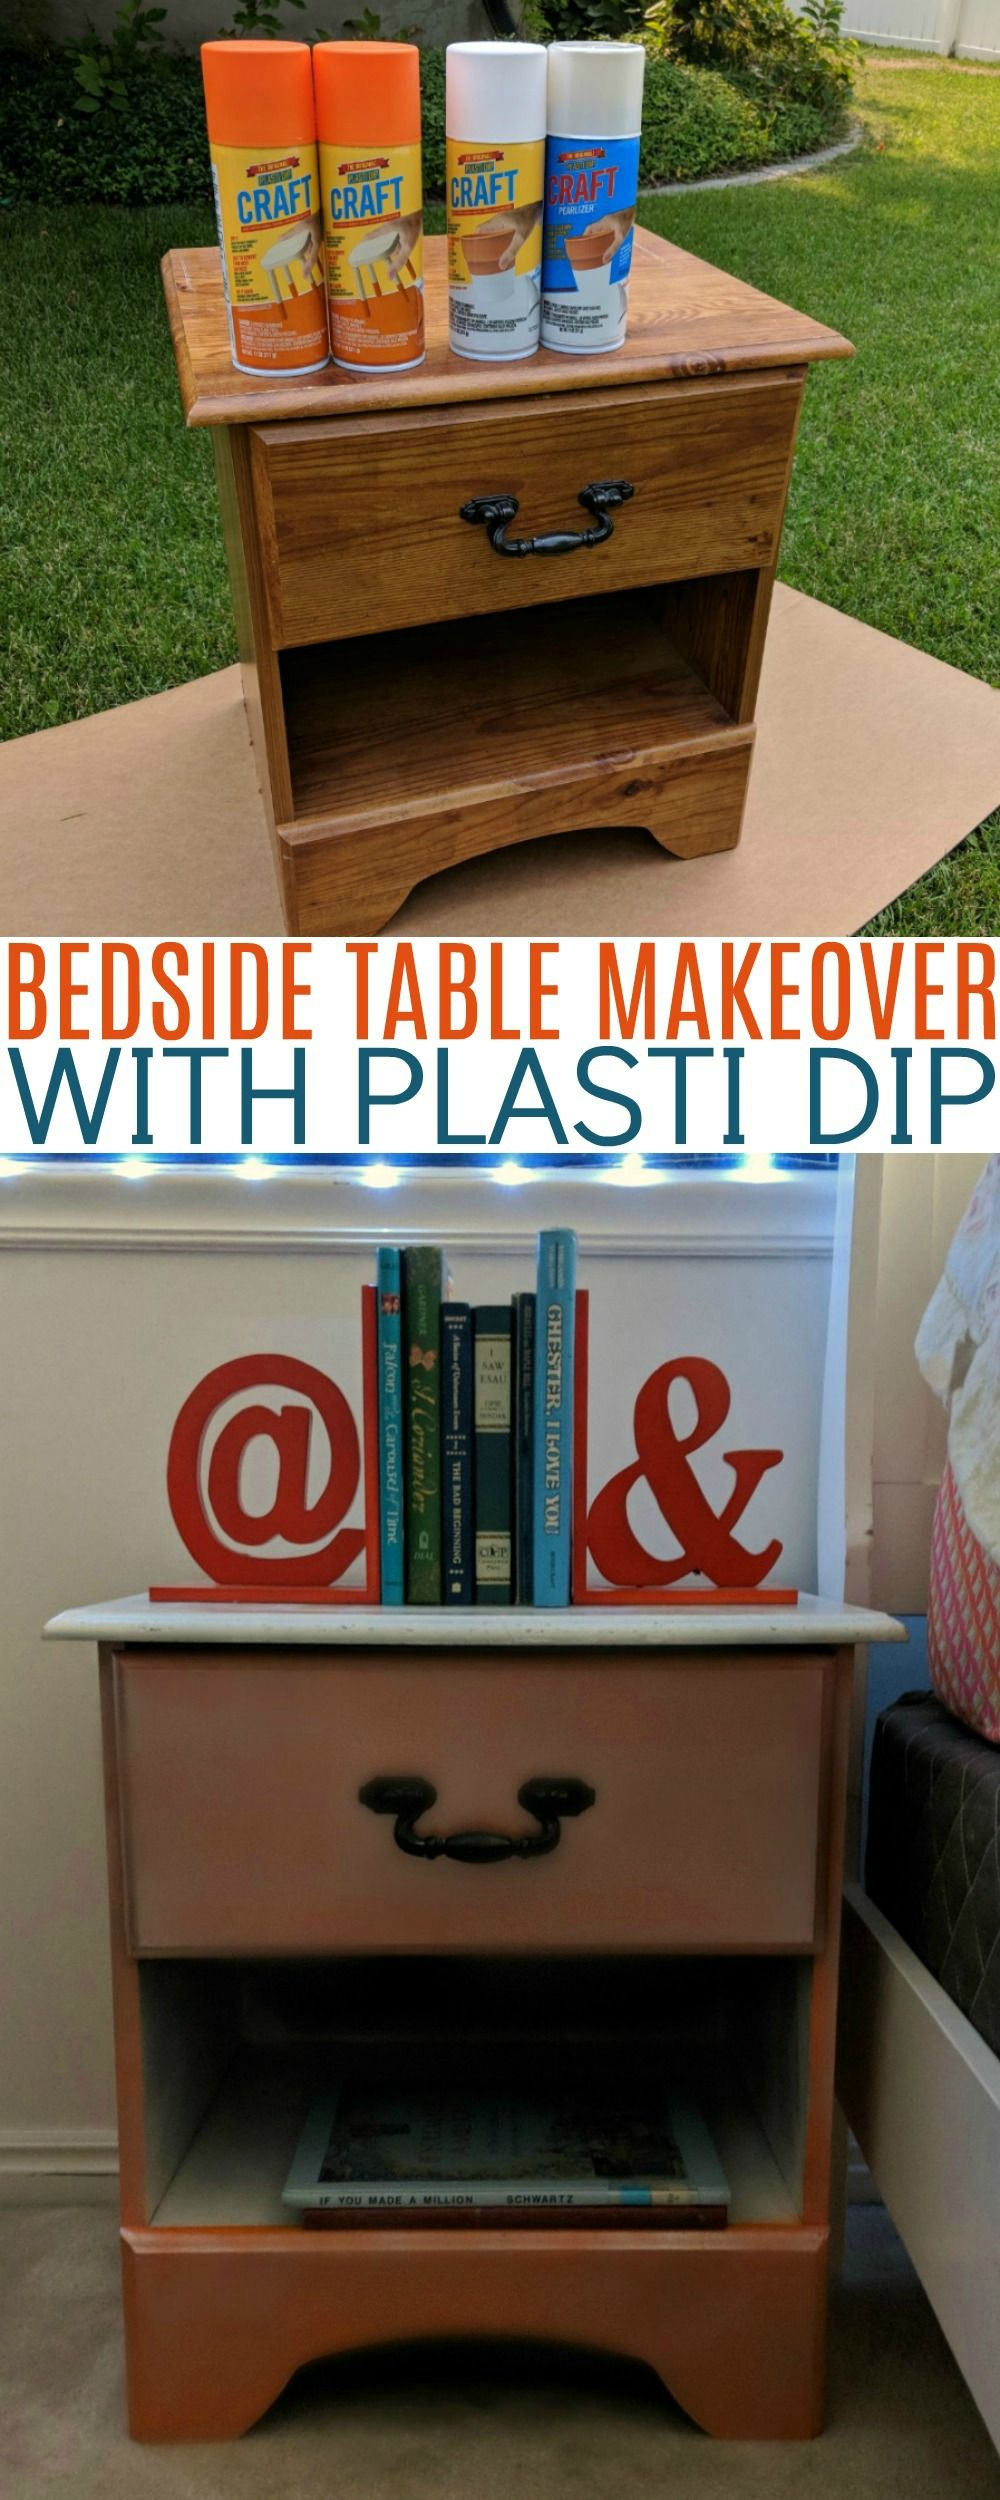 Bedside Table Makeover With Plasti Dip Bedside table